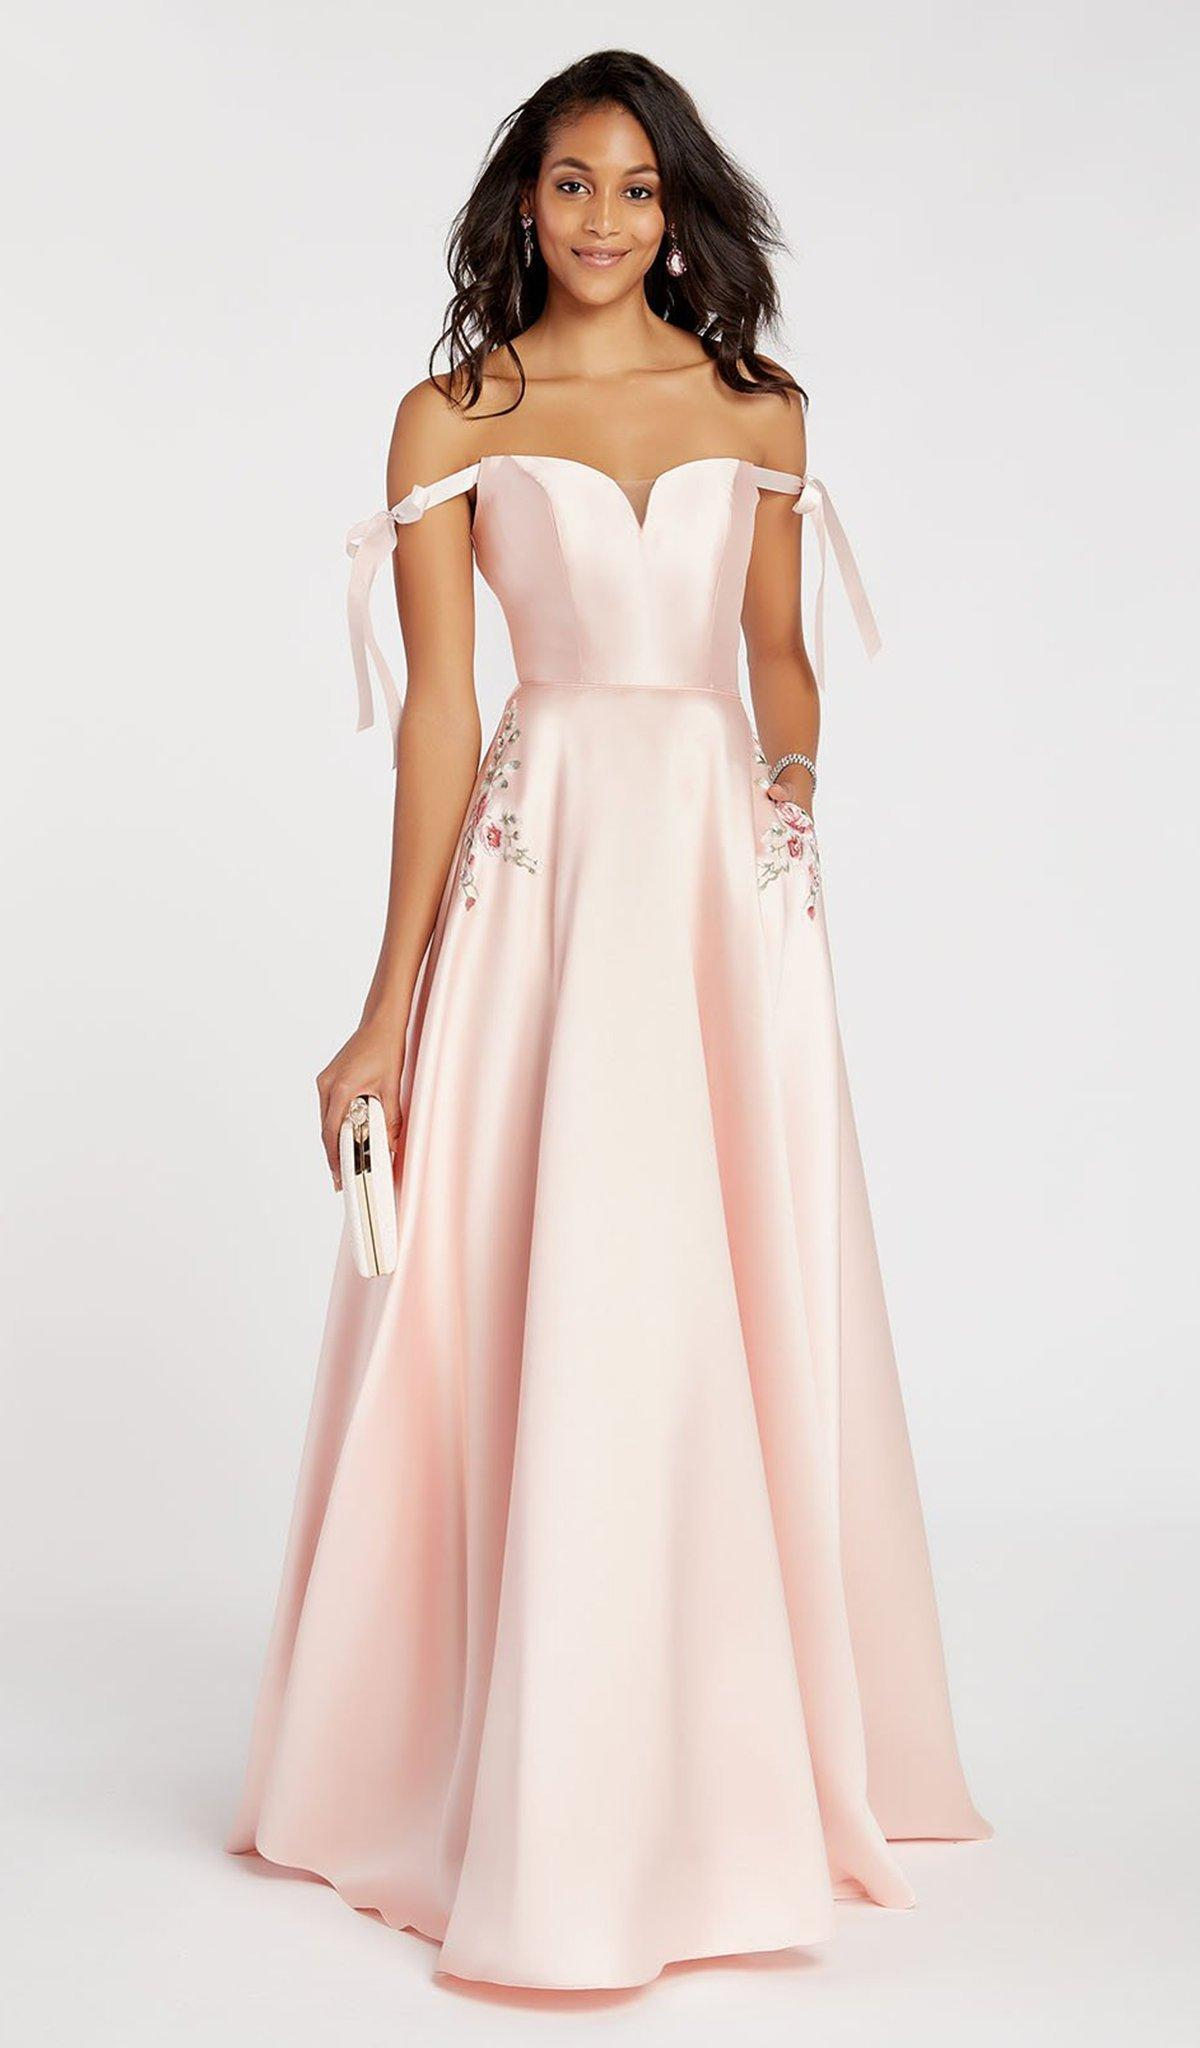 0f2ef35ad9 Alyce Paris 60499 Ribbon Sleeves Off Shoulder Mikado Prom Gown in ...